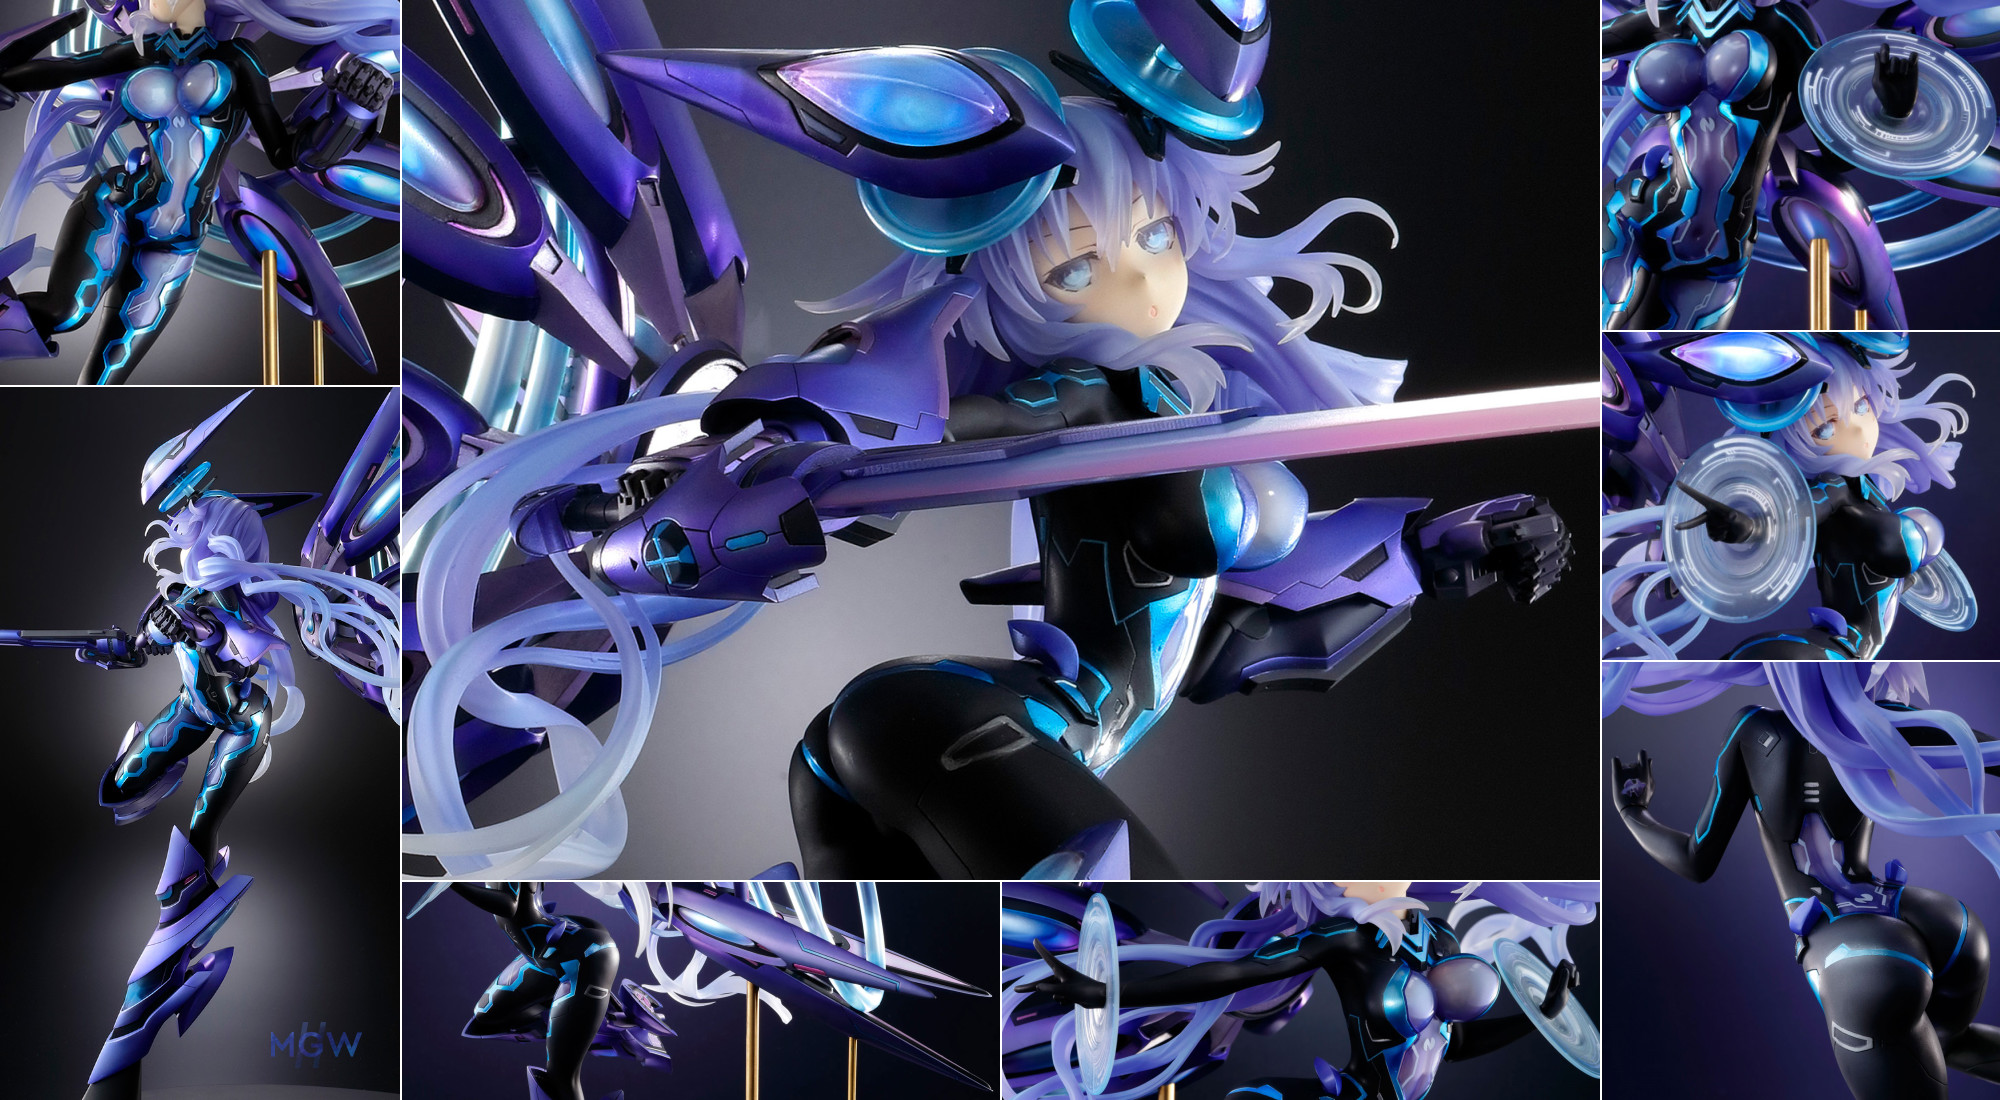 Hyperdimension Neptunia VII Next Purple by VERTEX MGW Anime Figure Pre order Guide